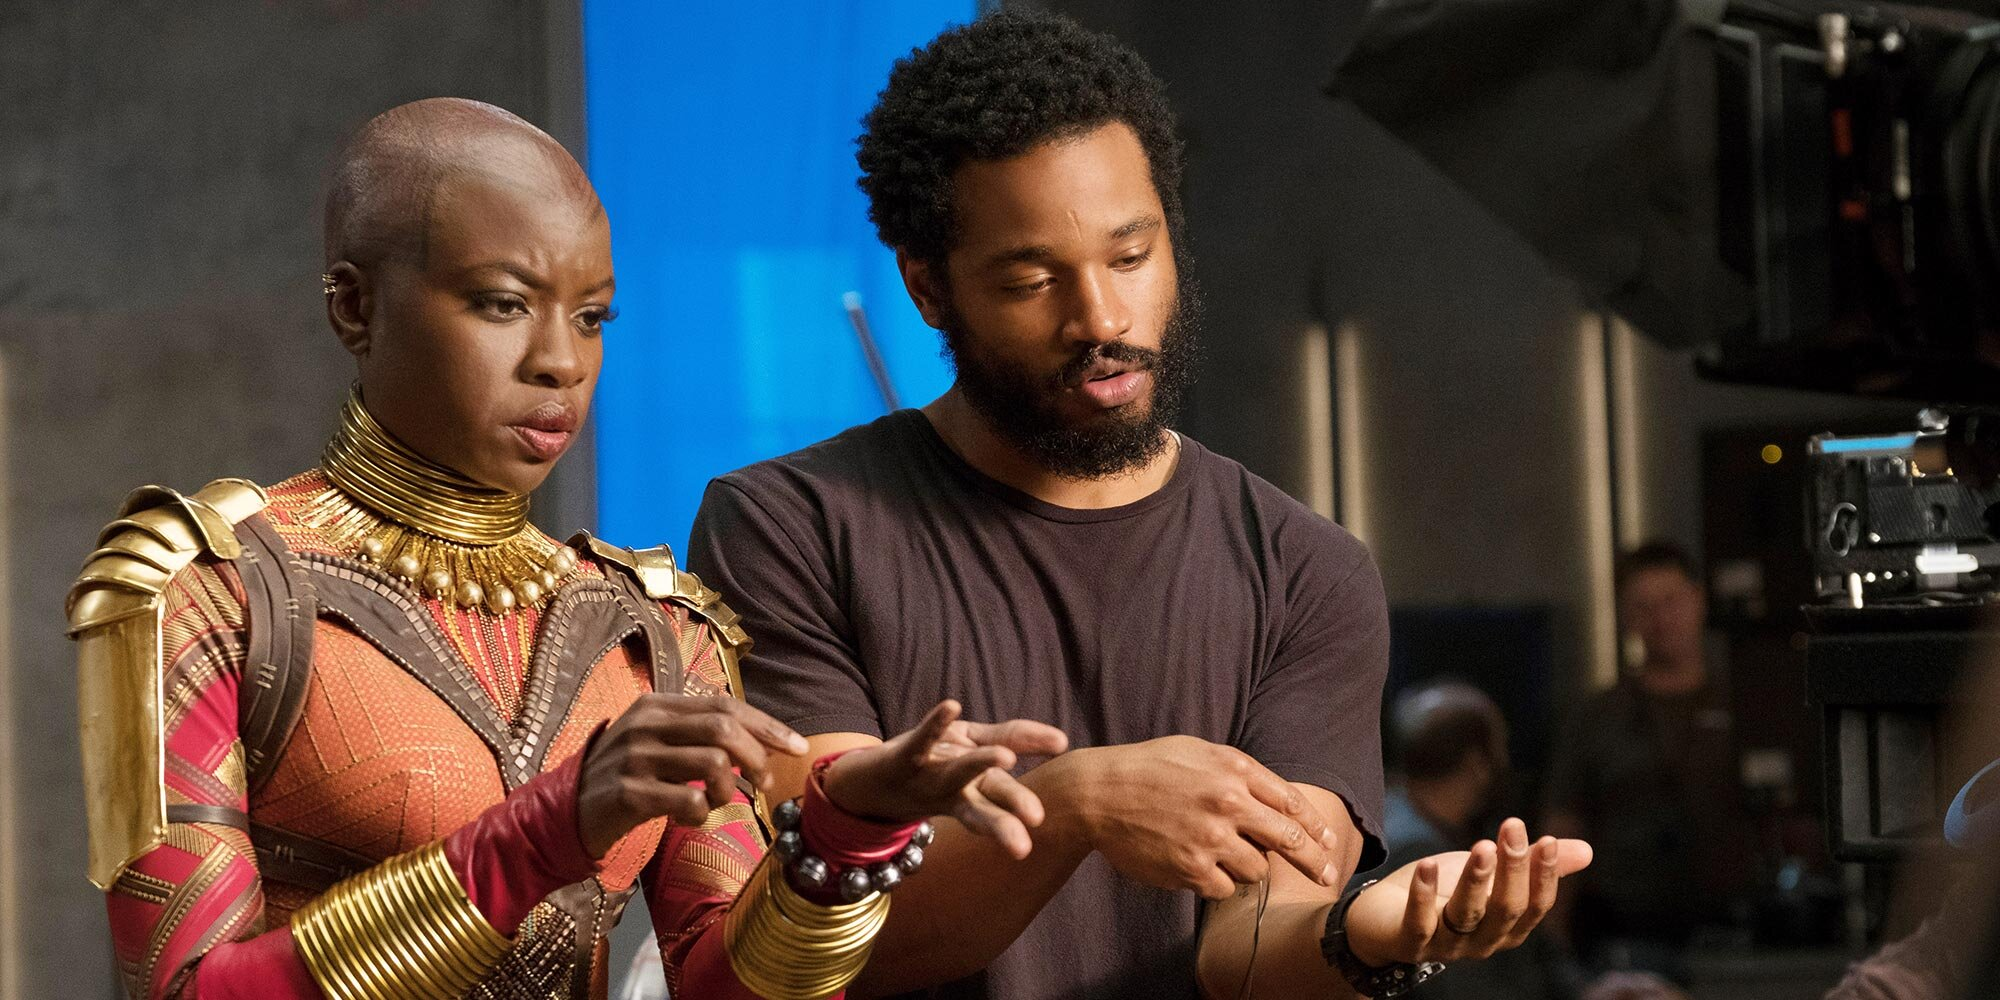 Ryan Coogler explains why he's keeping 'Black Panther 2' in Georgia despite calls for boycott